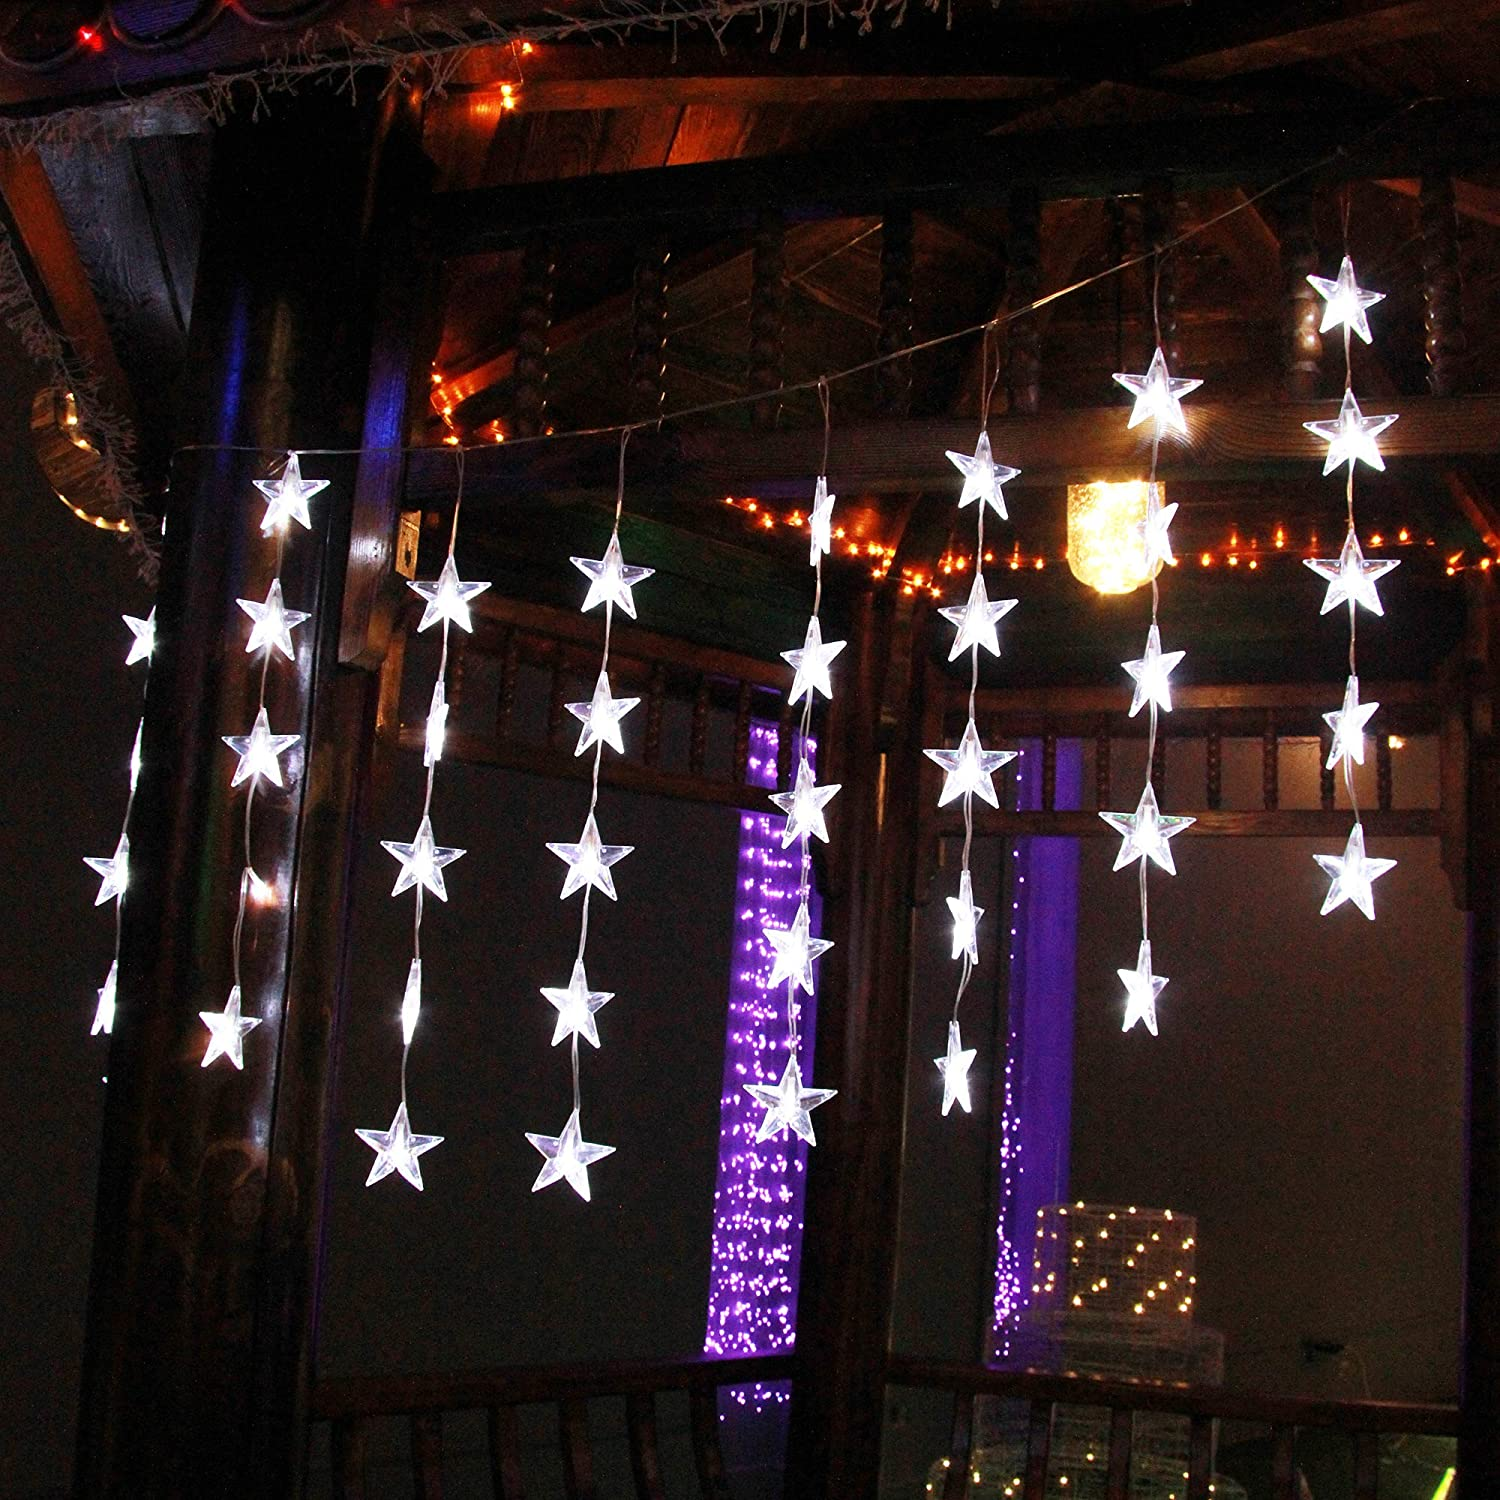 KNONEW Color Changing String Lights, Star Icicle Lights, 80 LED, 9 Modes Plug in Fairy Light String for Christmas Wedding Party Halloween Bedroom Backdrops Decorations (Warm White+ Daylight White)